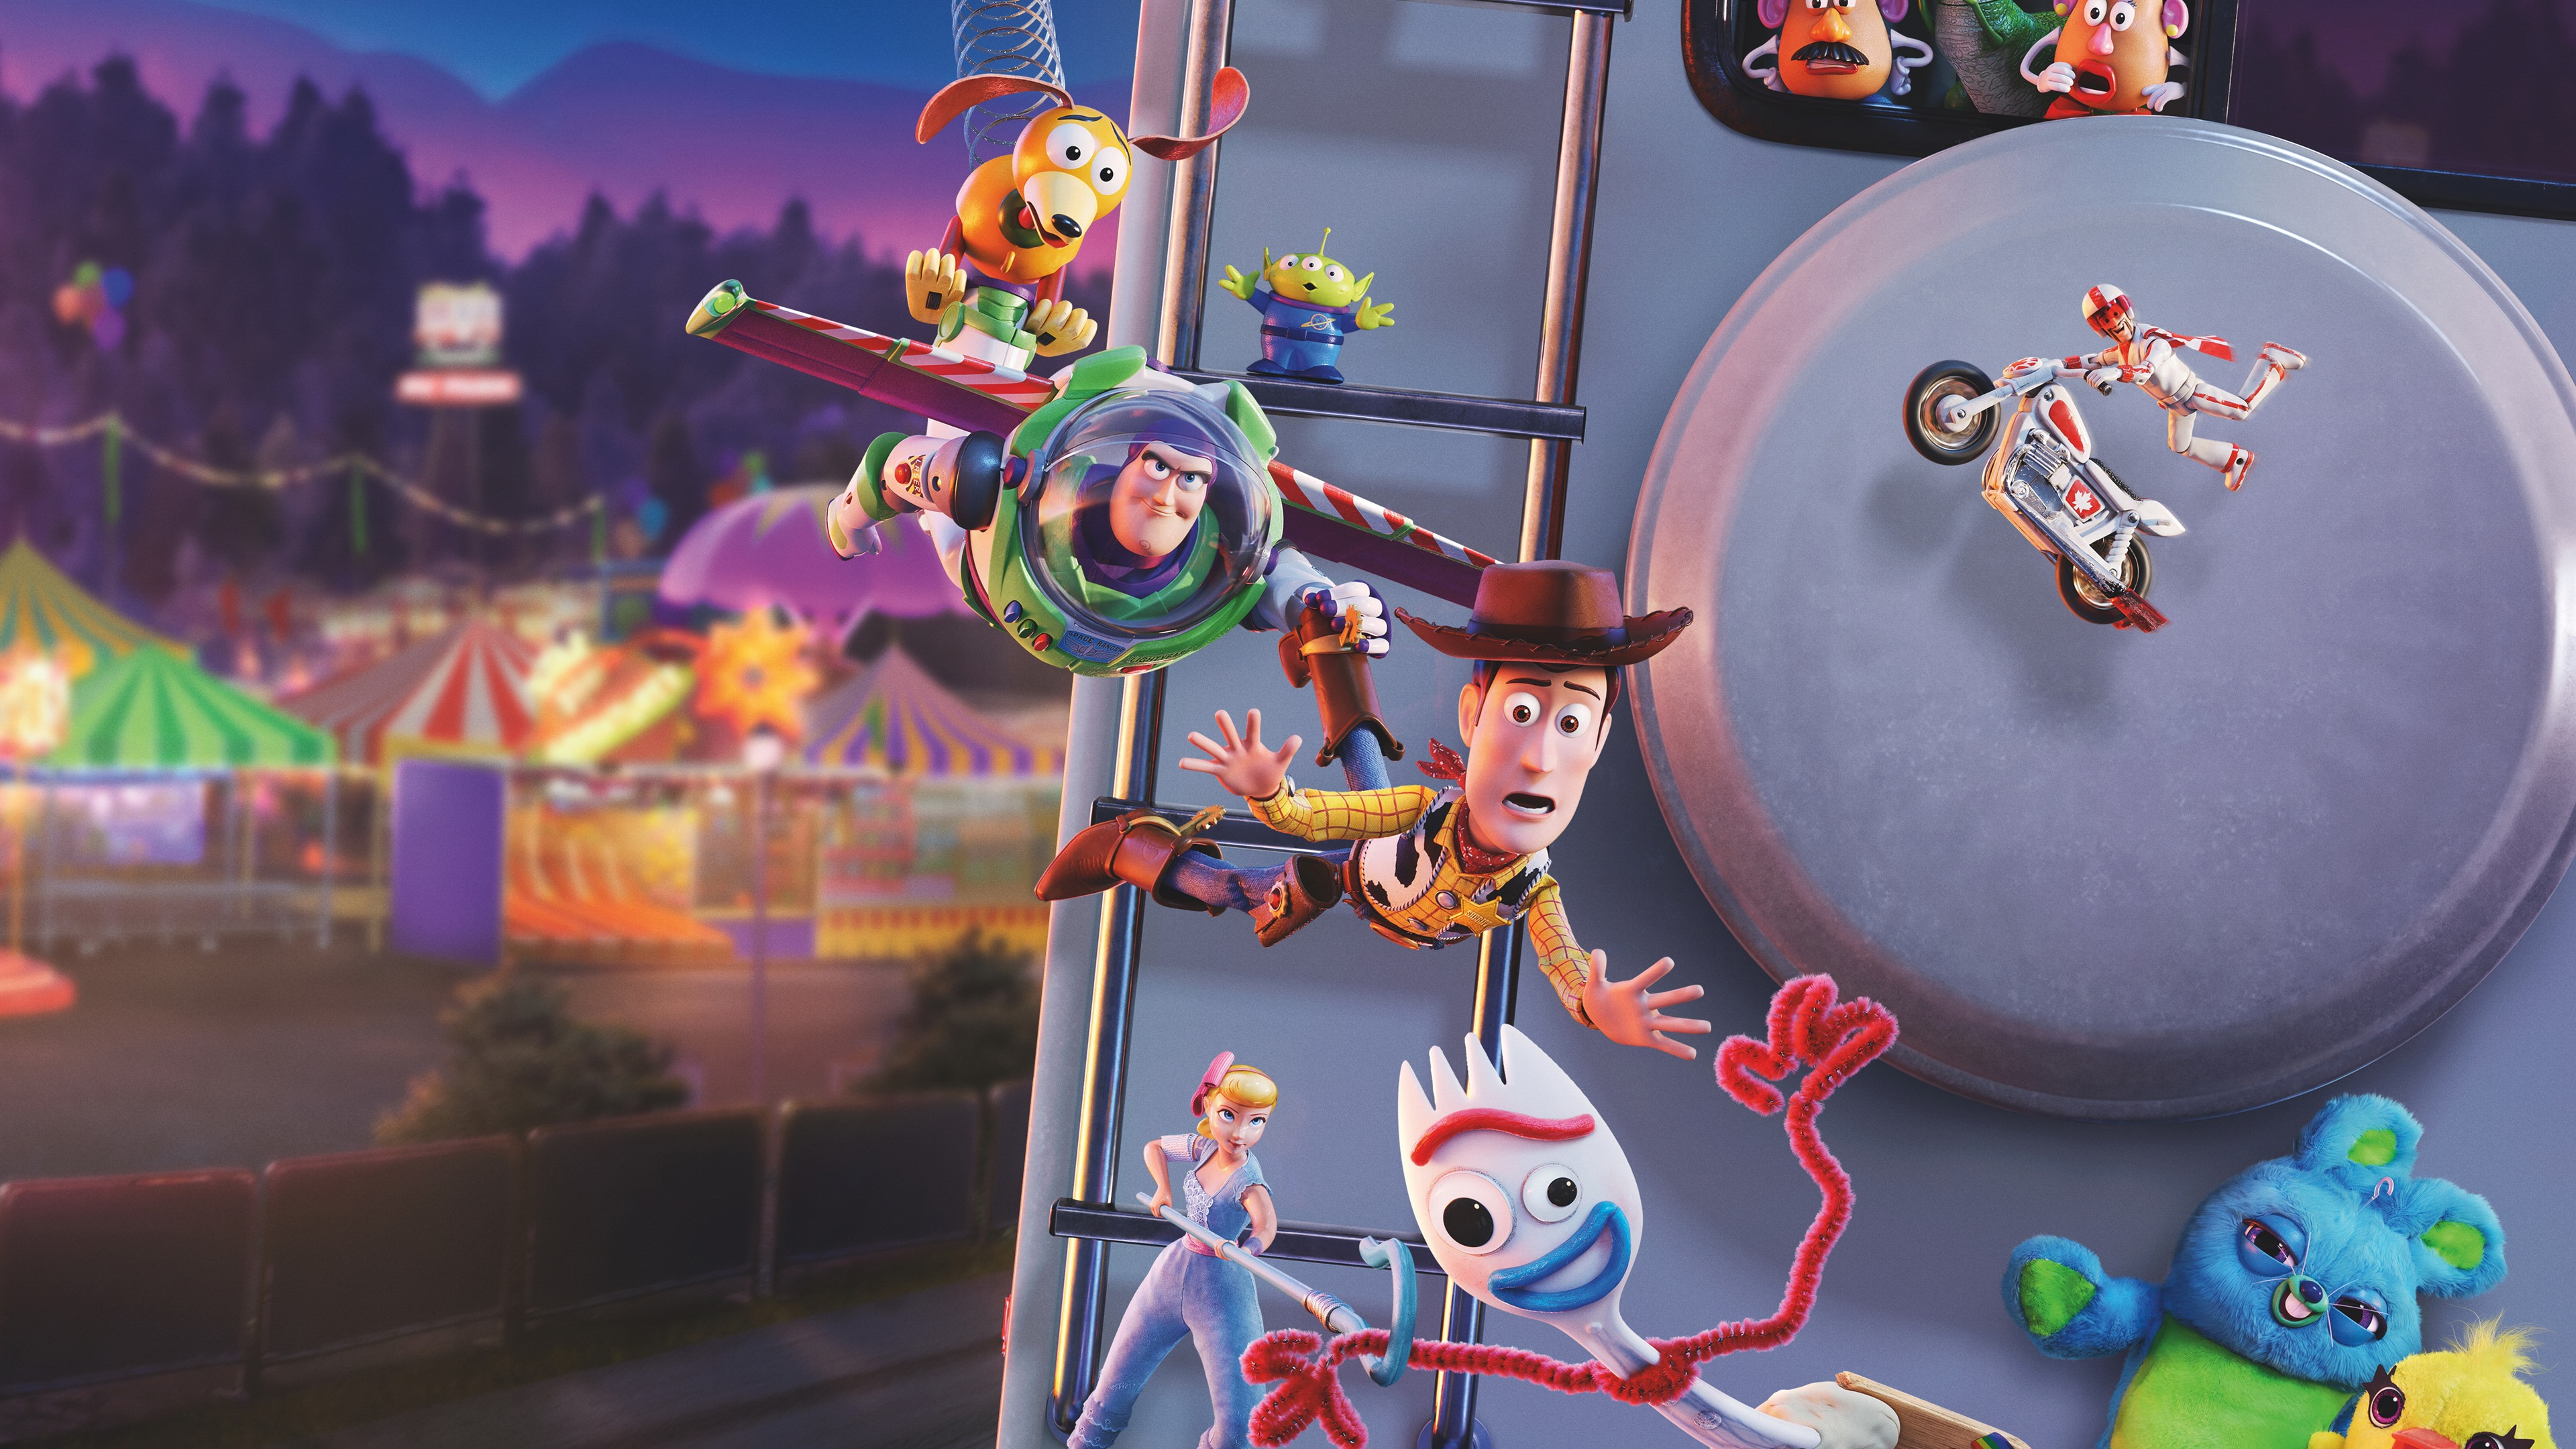 Toy Story 4 Disney Film 2019 3840x2160 Uhd 4k